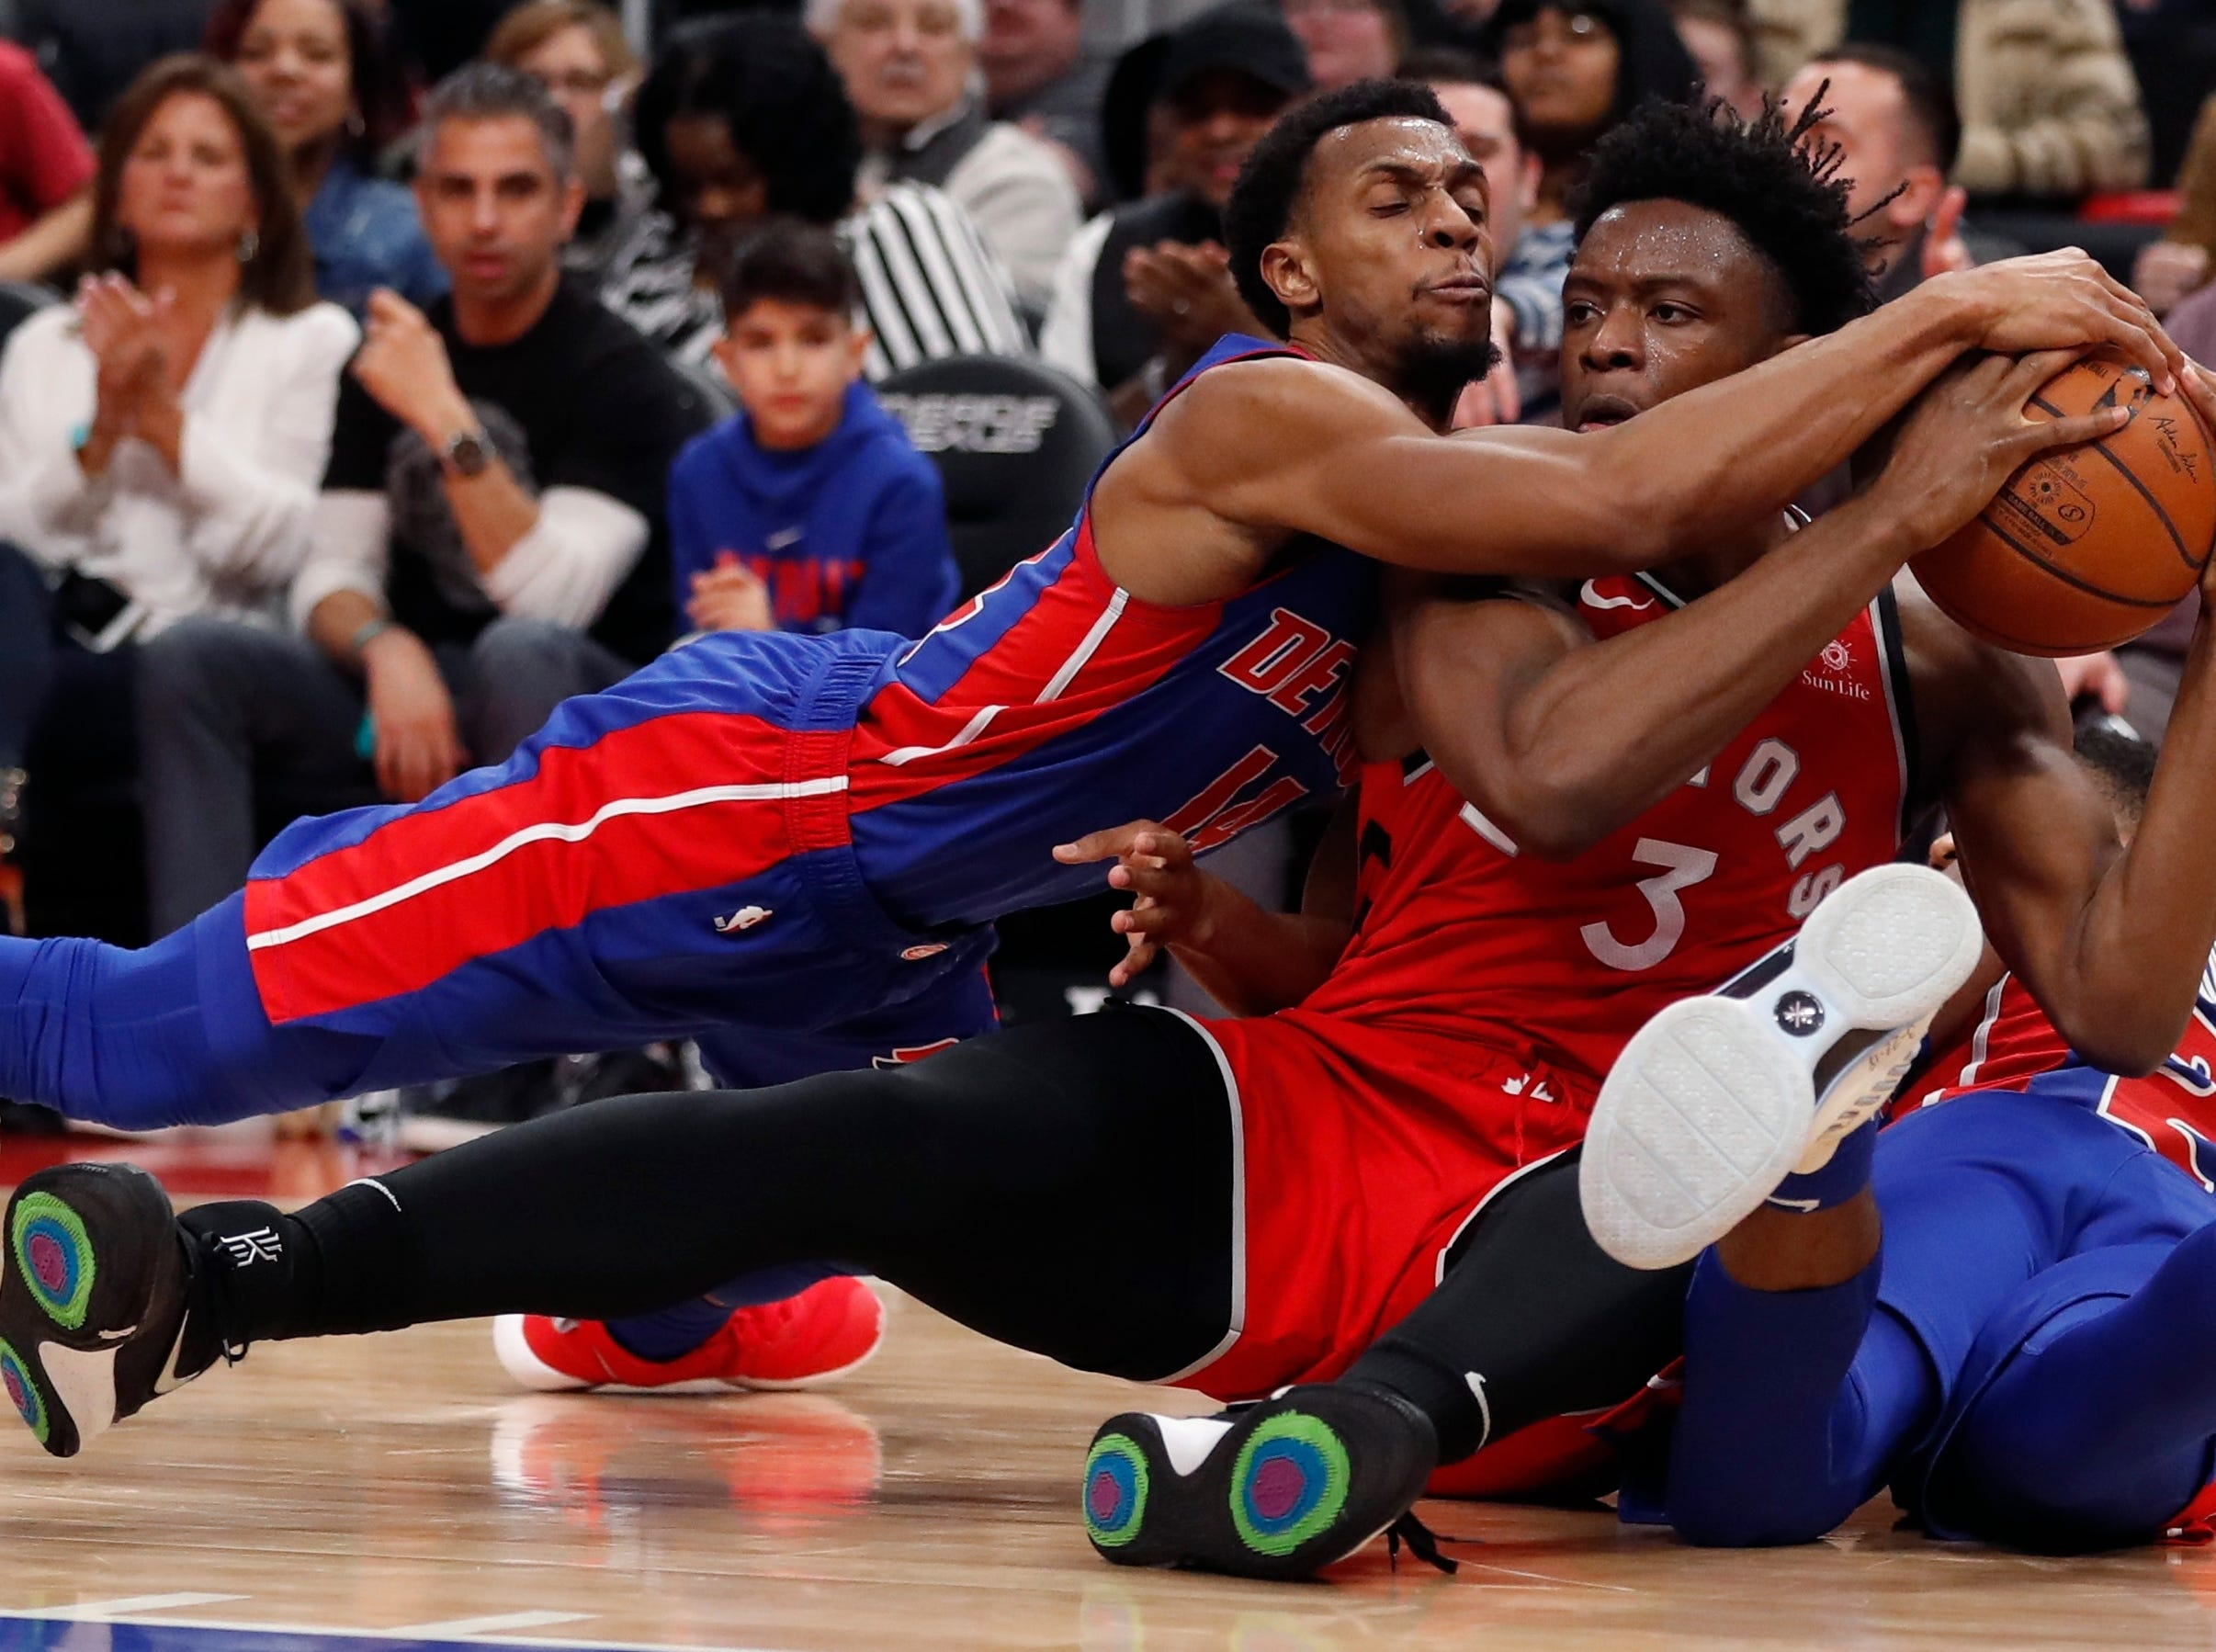 Detroit Pistons guard Ish Smith, left, and Toronto Raptors forward OG Anunoby (3) chase the loose ball during the second half.